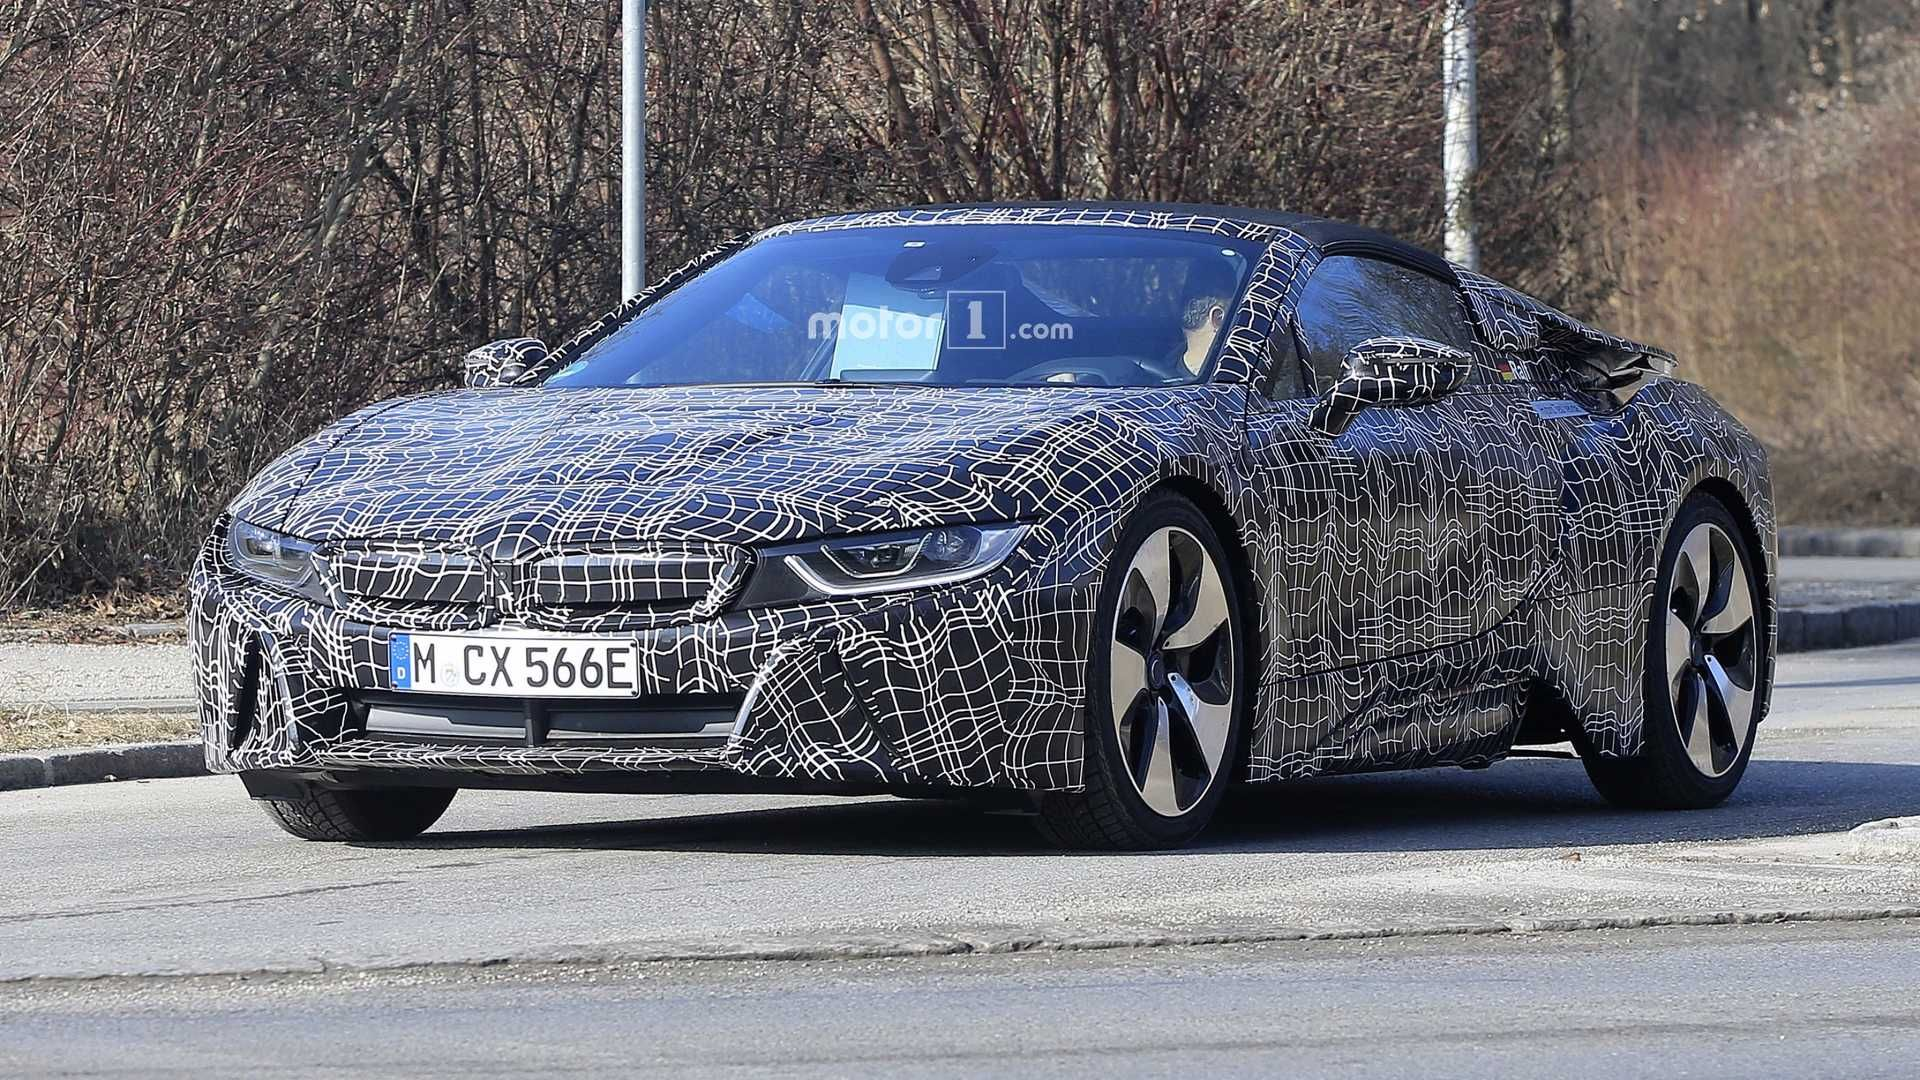 The Bmw I8 Is A Plug In Hybrid Sports Car Developed By Bmw The I8